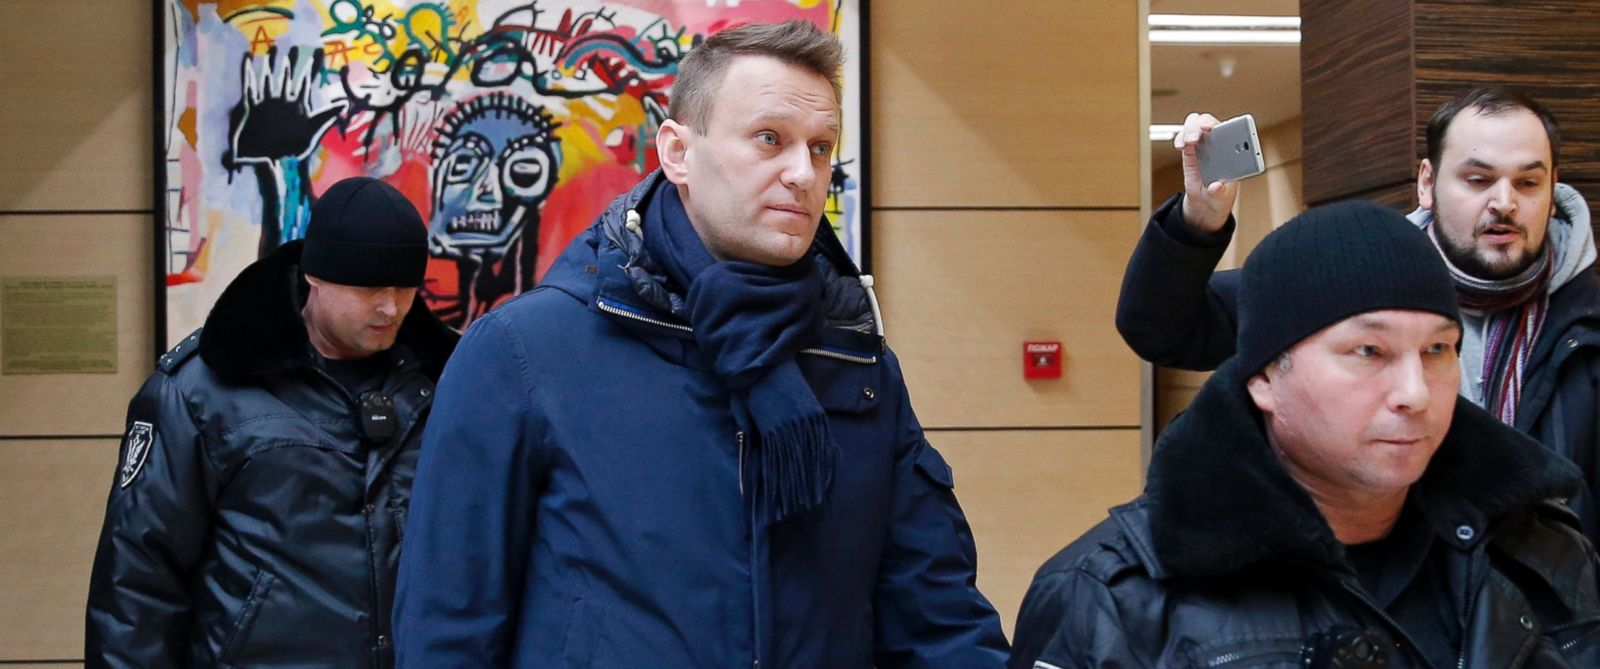 PHOTO: Alexei Navalny, center, escorted by Moscow bailiffs in Moscow, Russia in this Jan. 31, 2017 file photo.